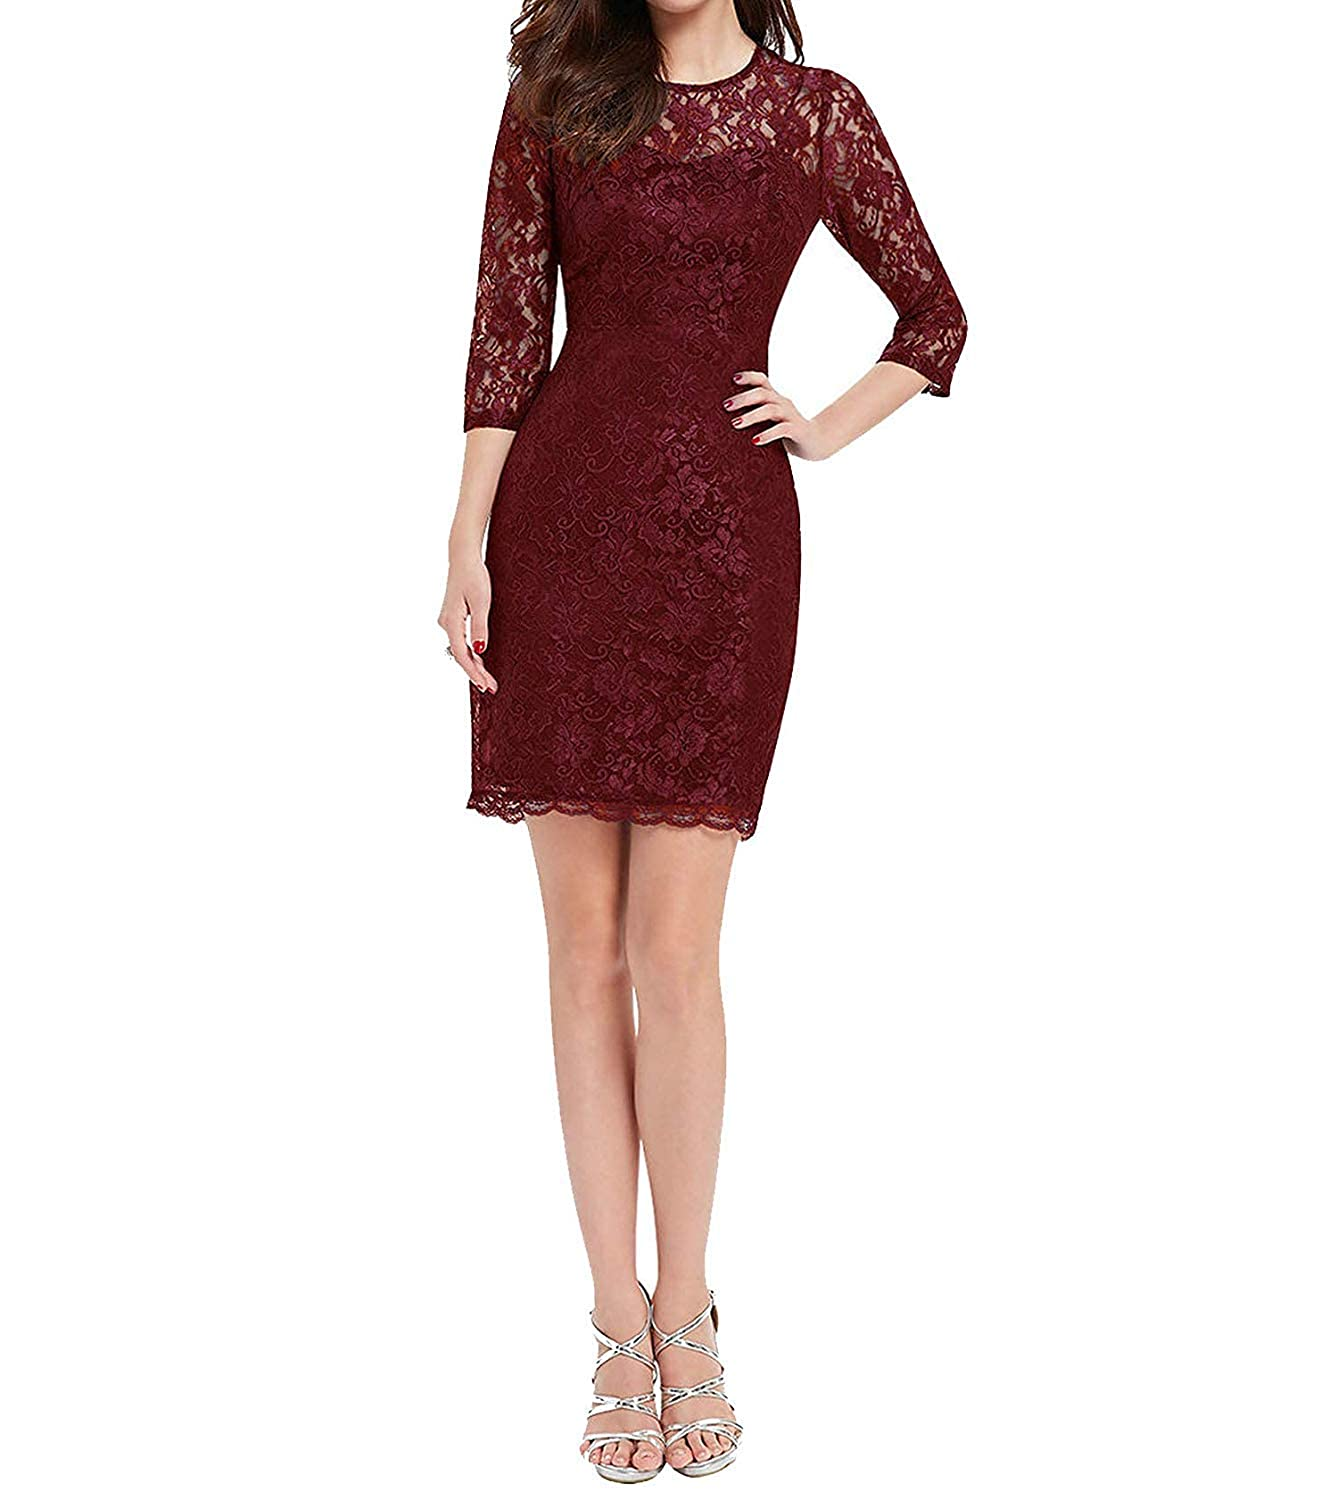 Burgundy Red Anewsex Nice Cocktail Special Occasion Long Sleeve Slim Fit Lace ss